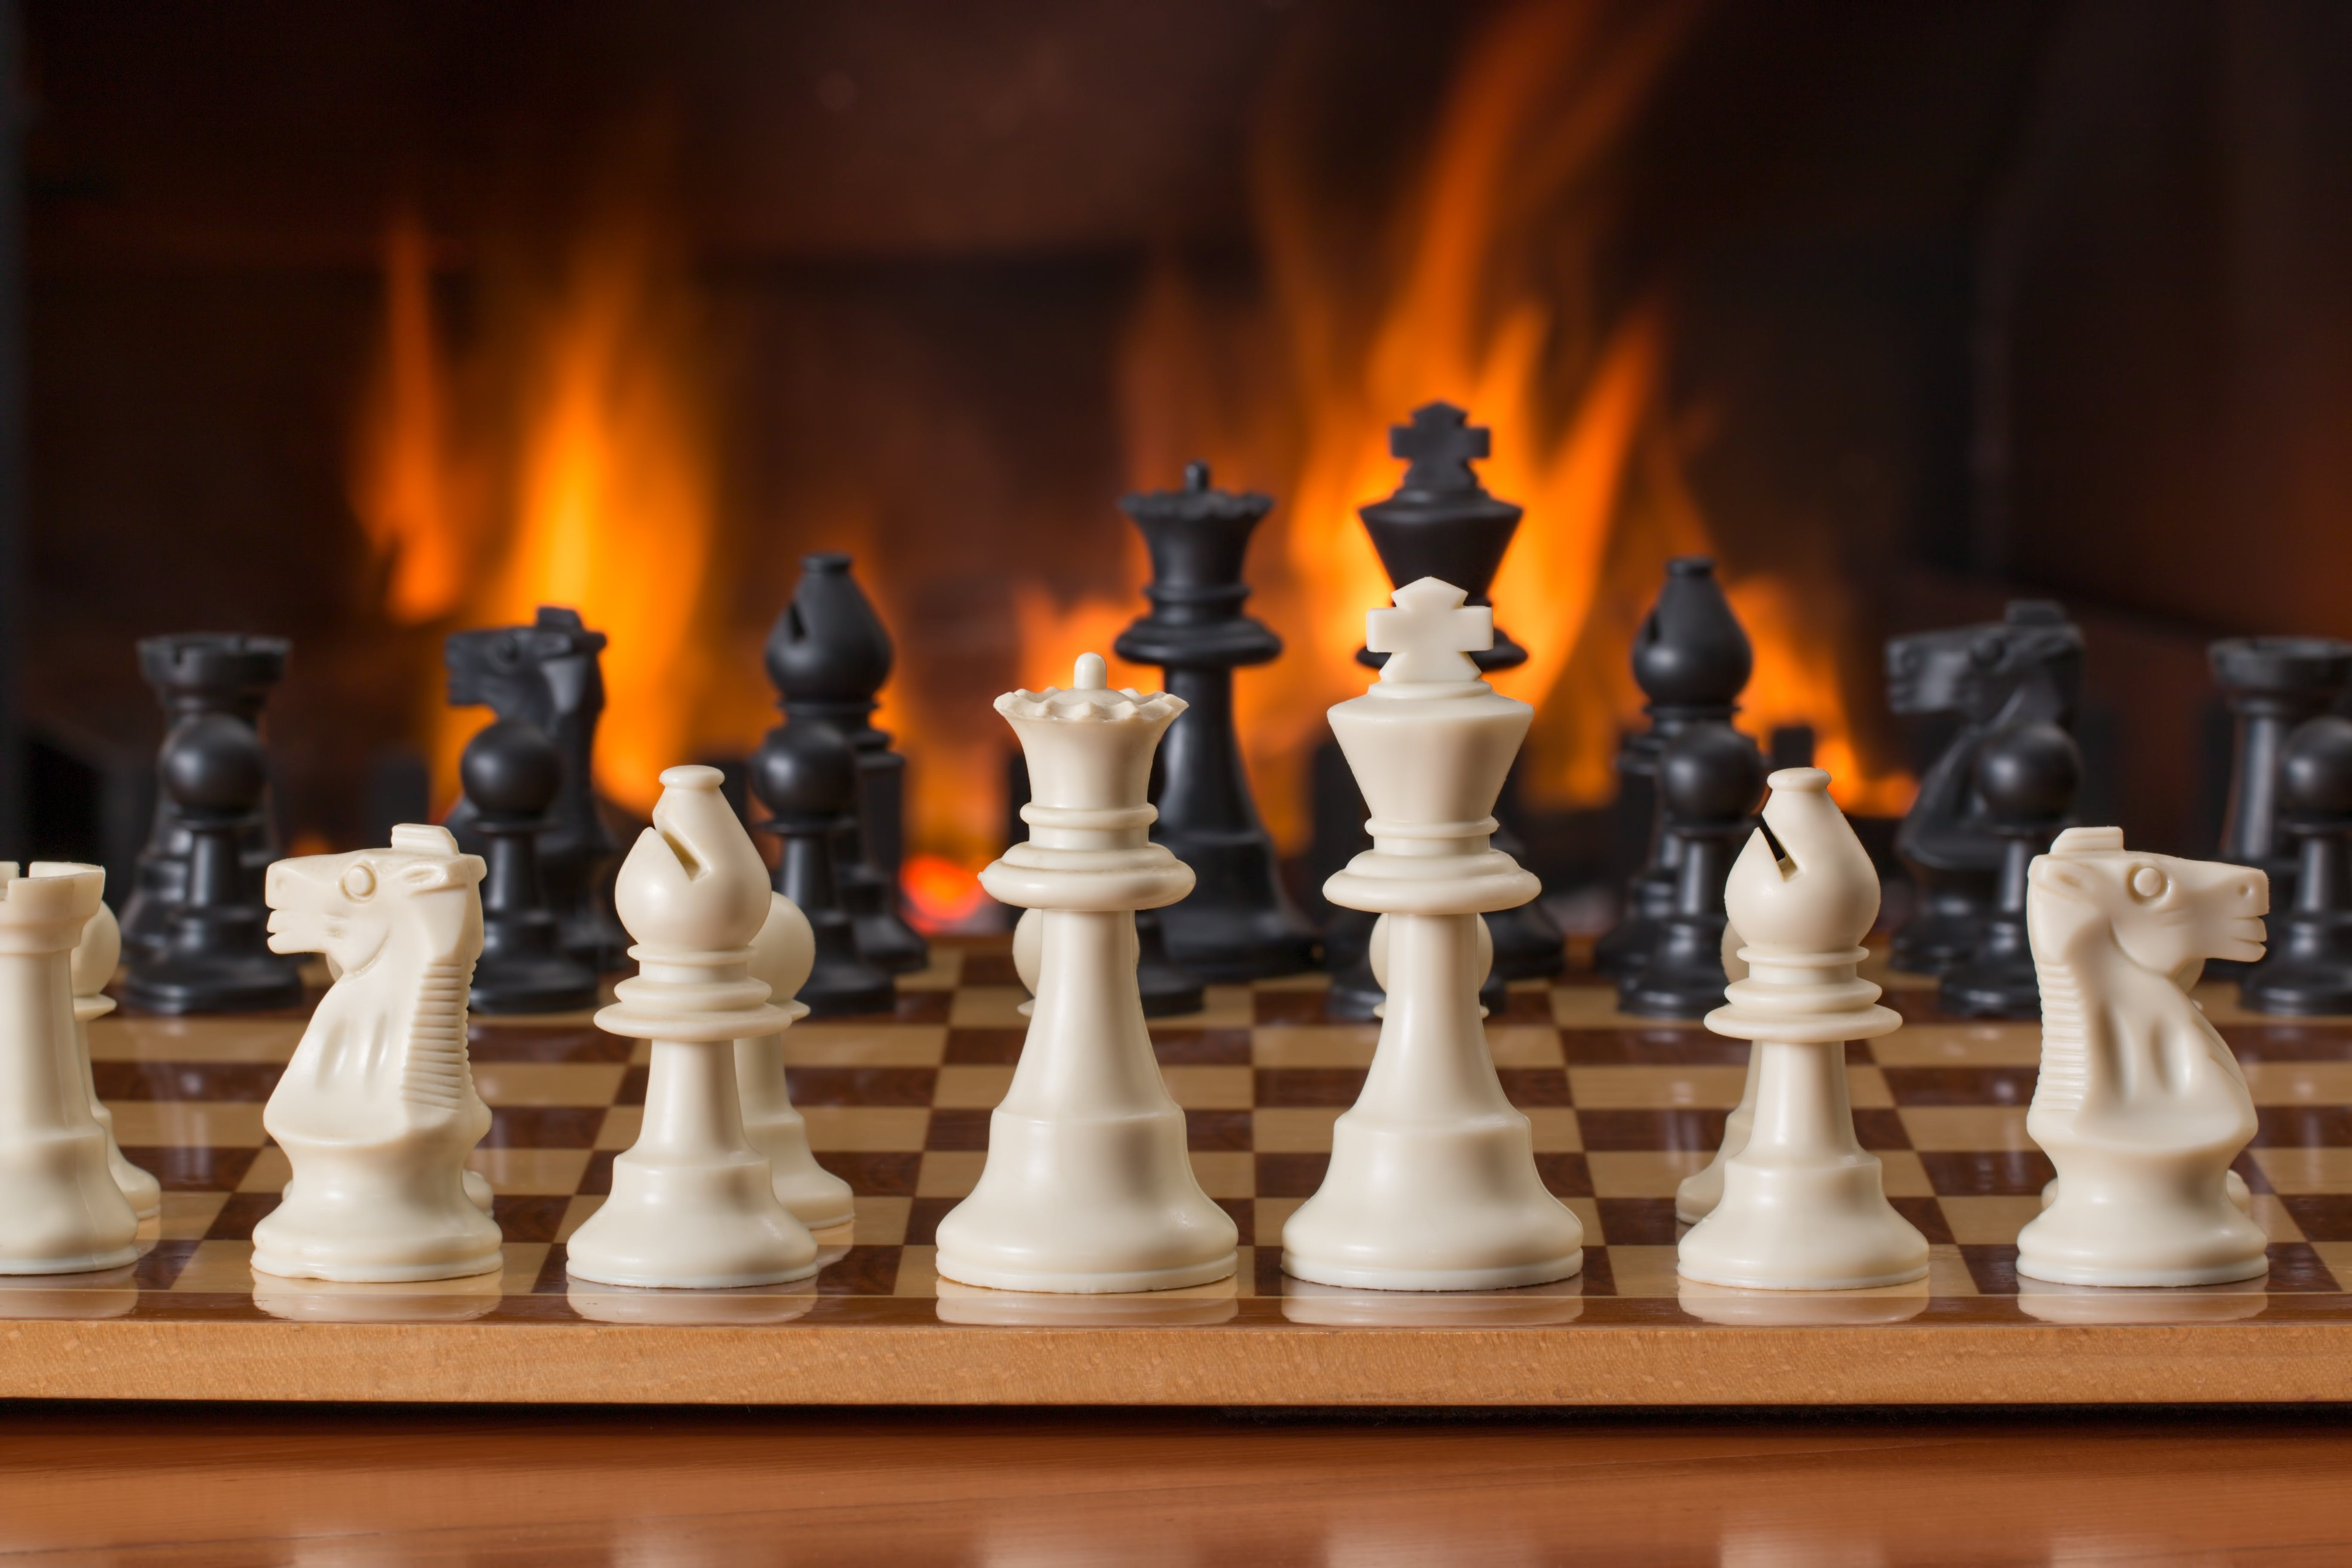 White and Black Chess Pieces on Board in Front of Fireplace